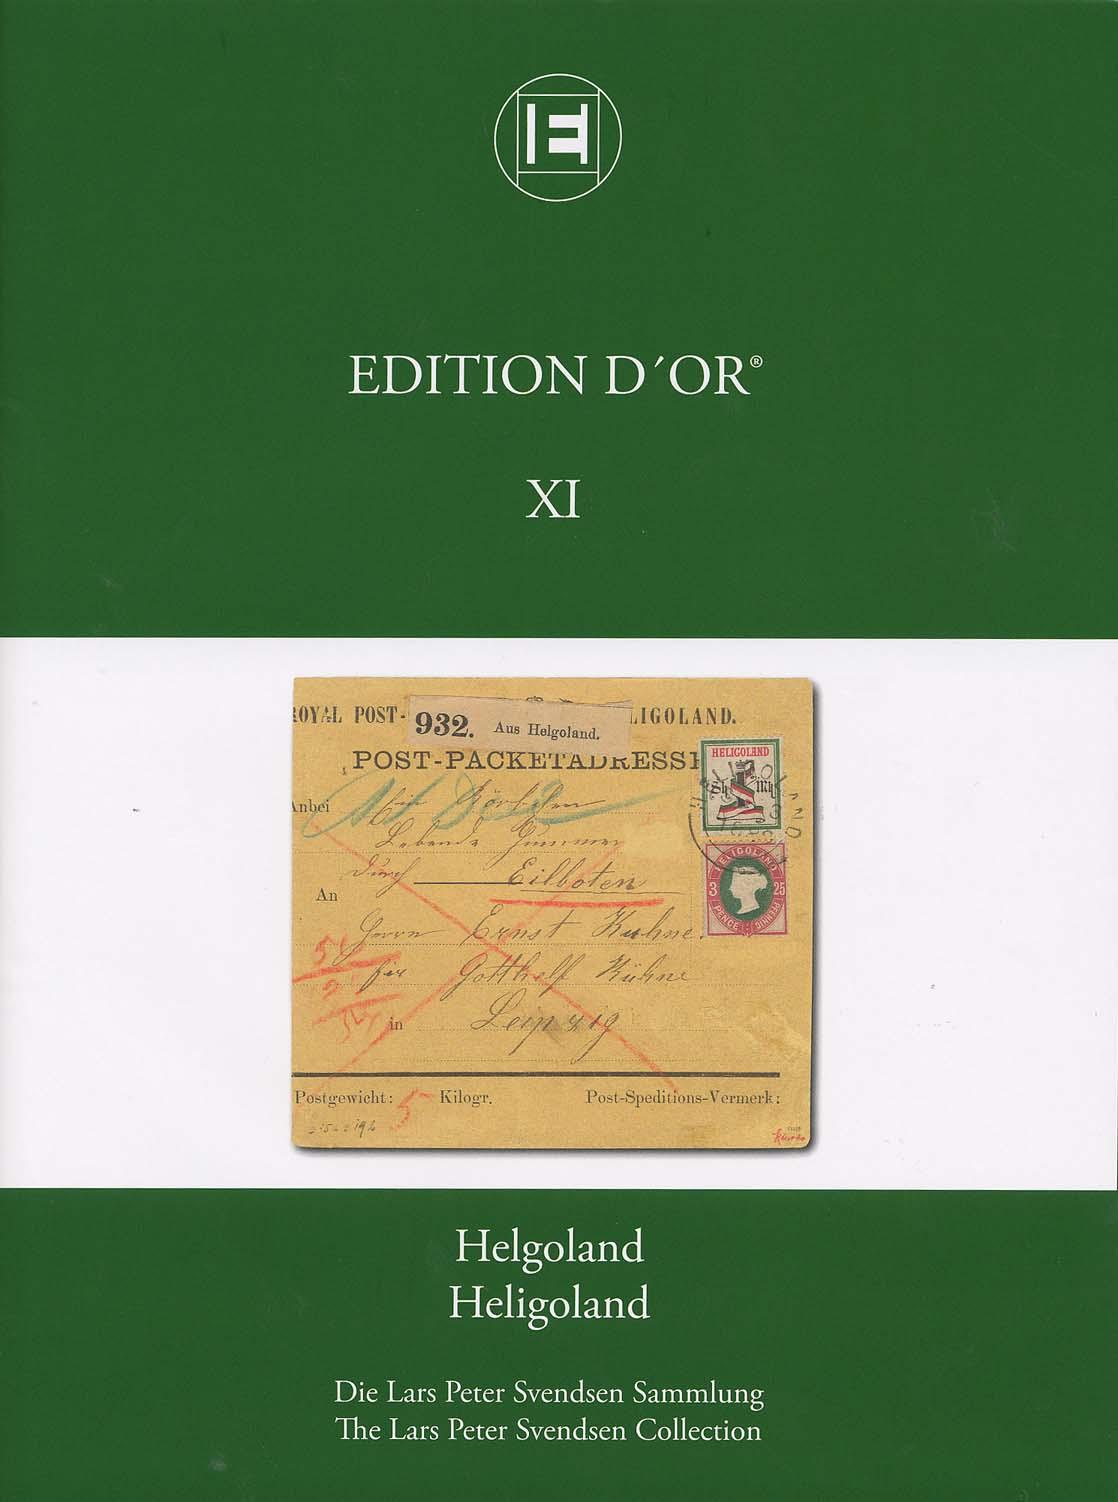 Vol. 11: Heligoland • The Lars Peter Svendsen Collection